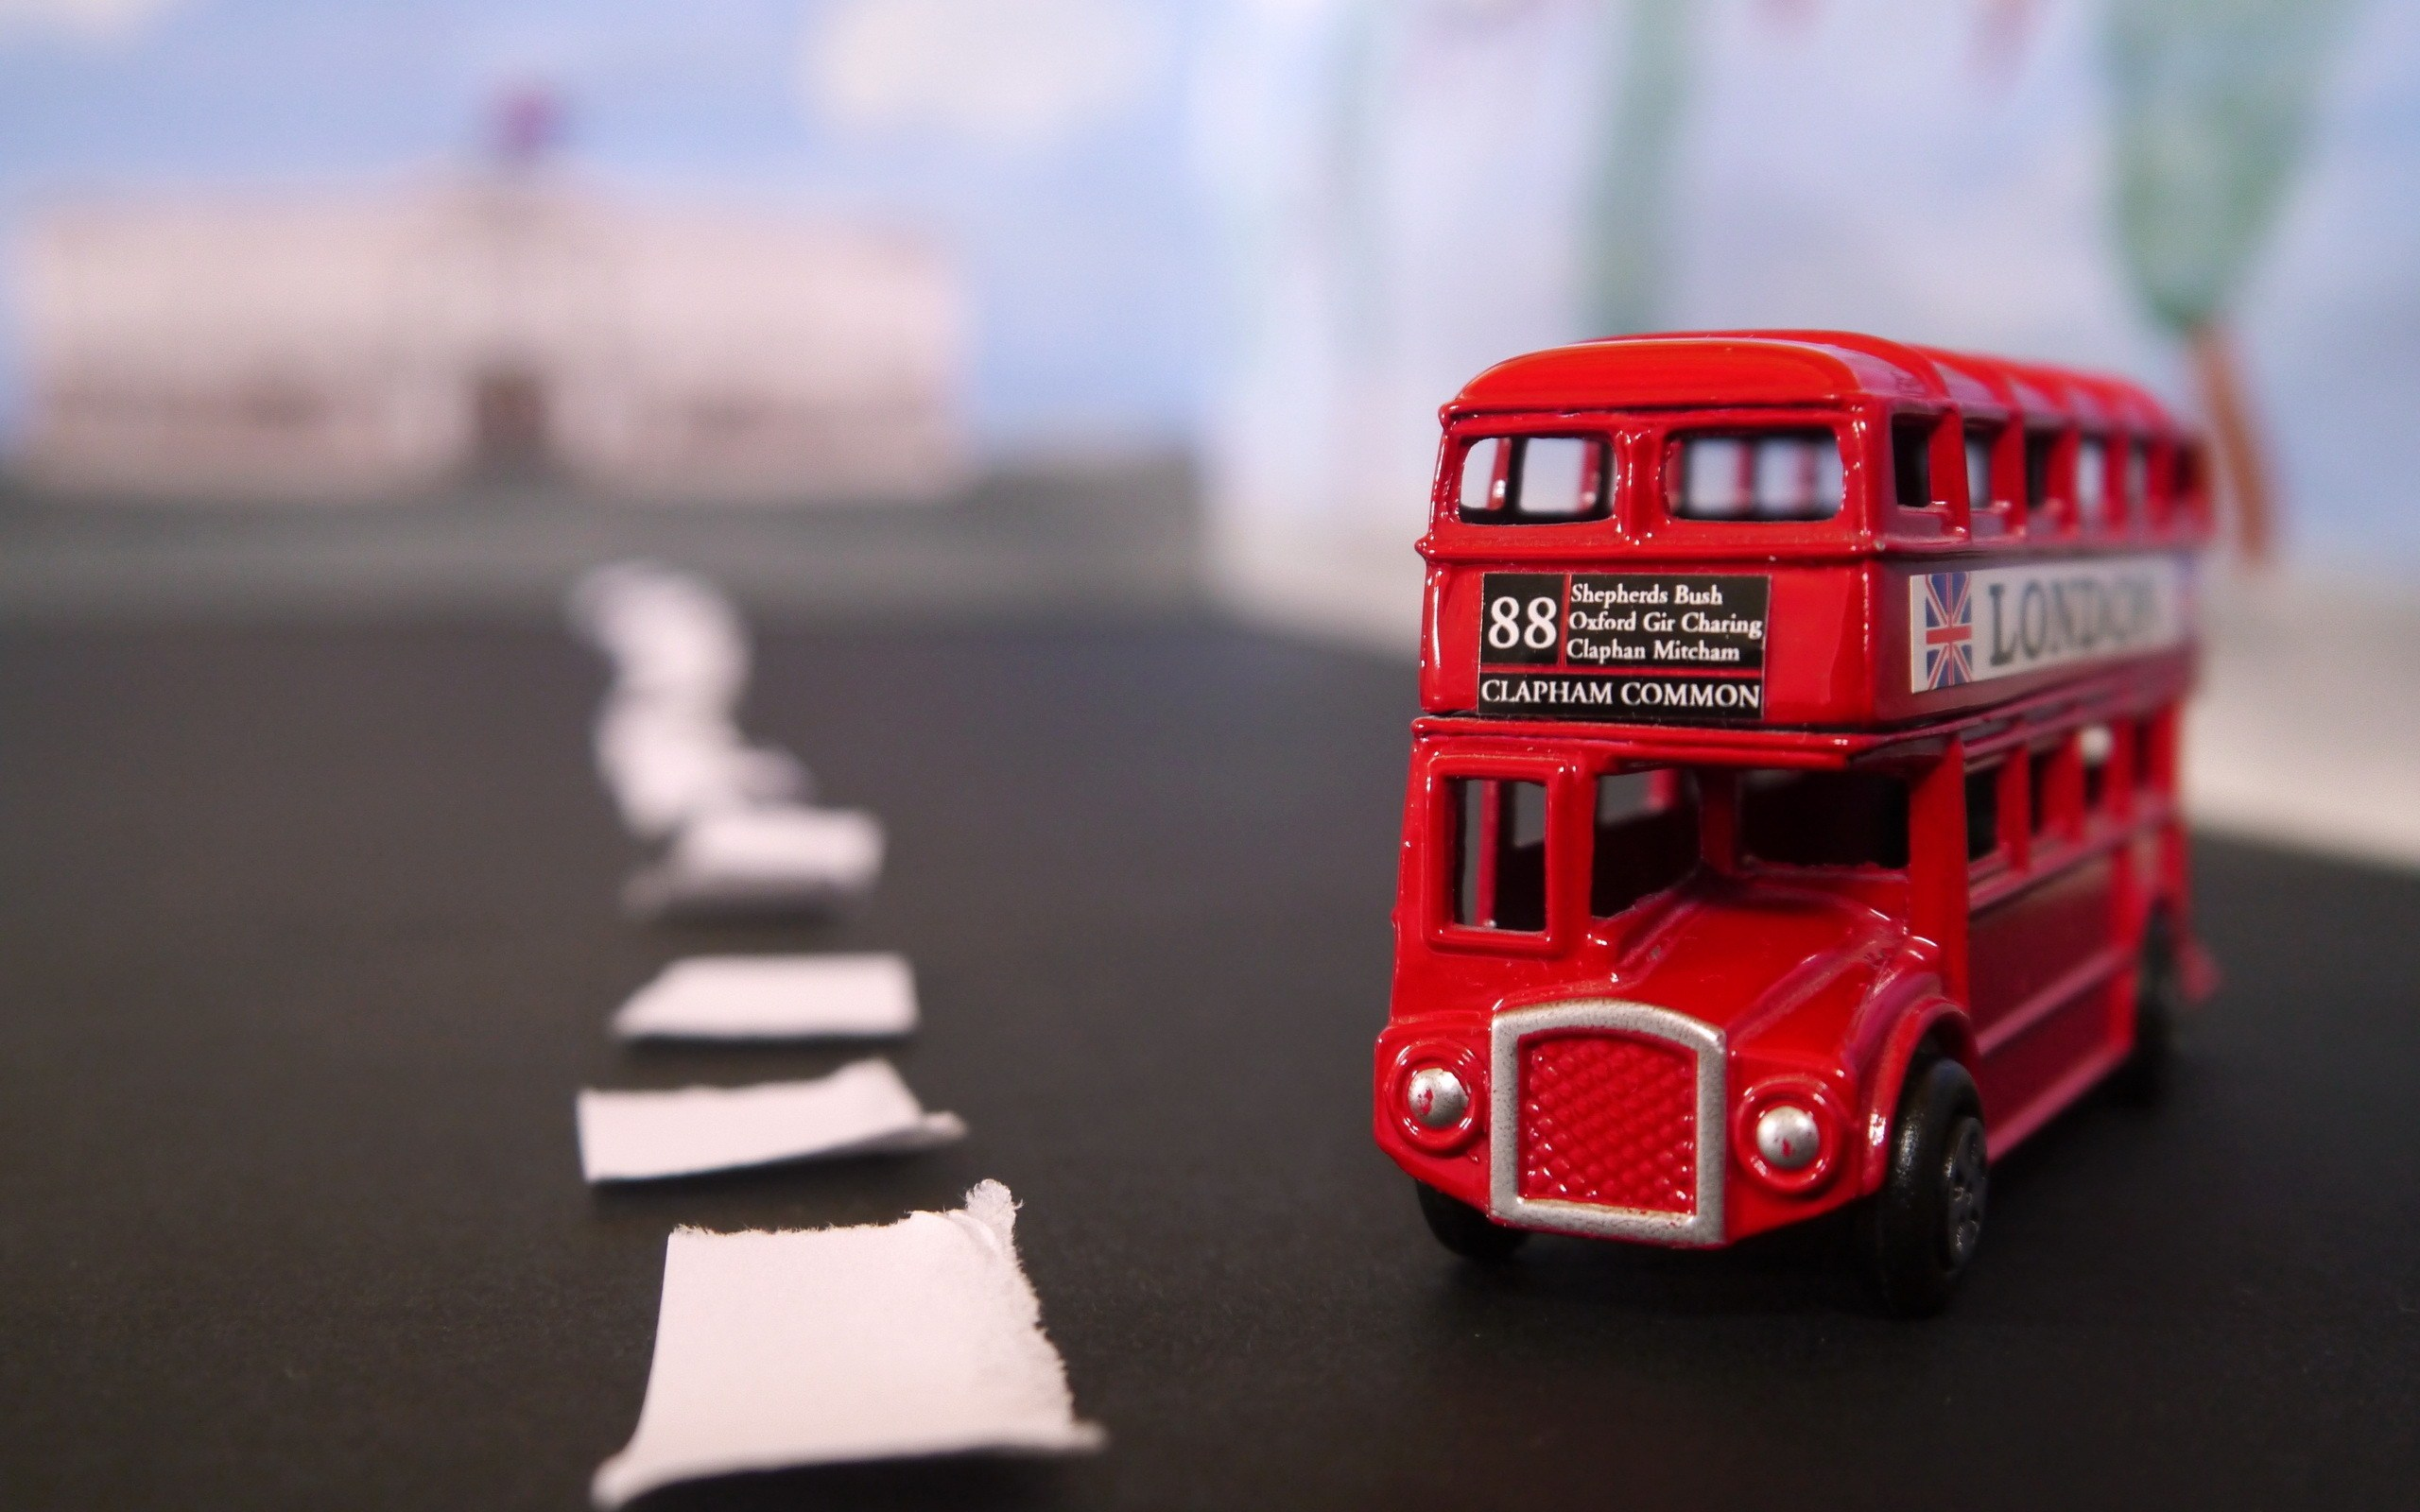 toy-bus-uk-london-road-close-up-photo-wallpaper-2560x1600